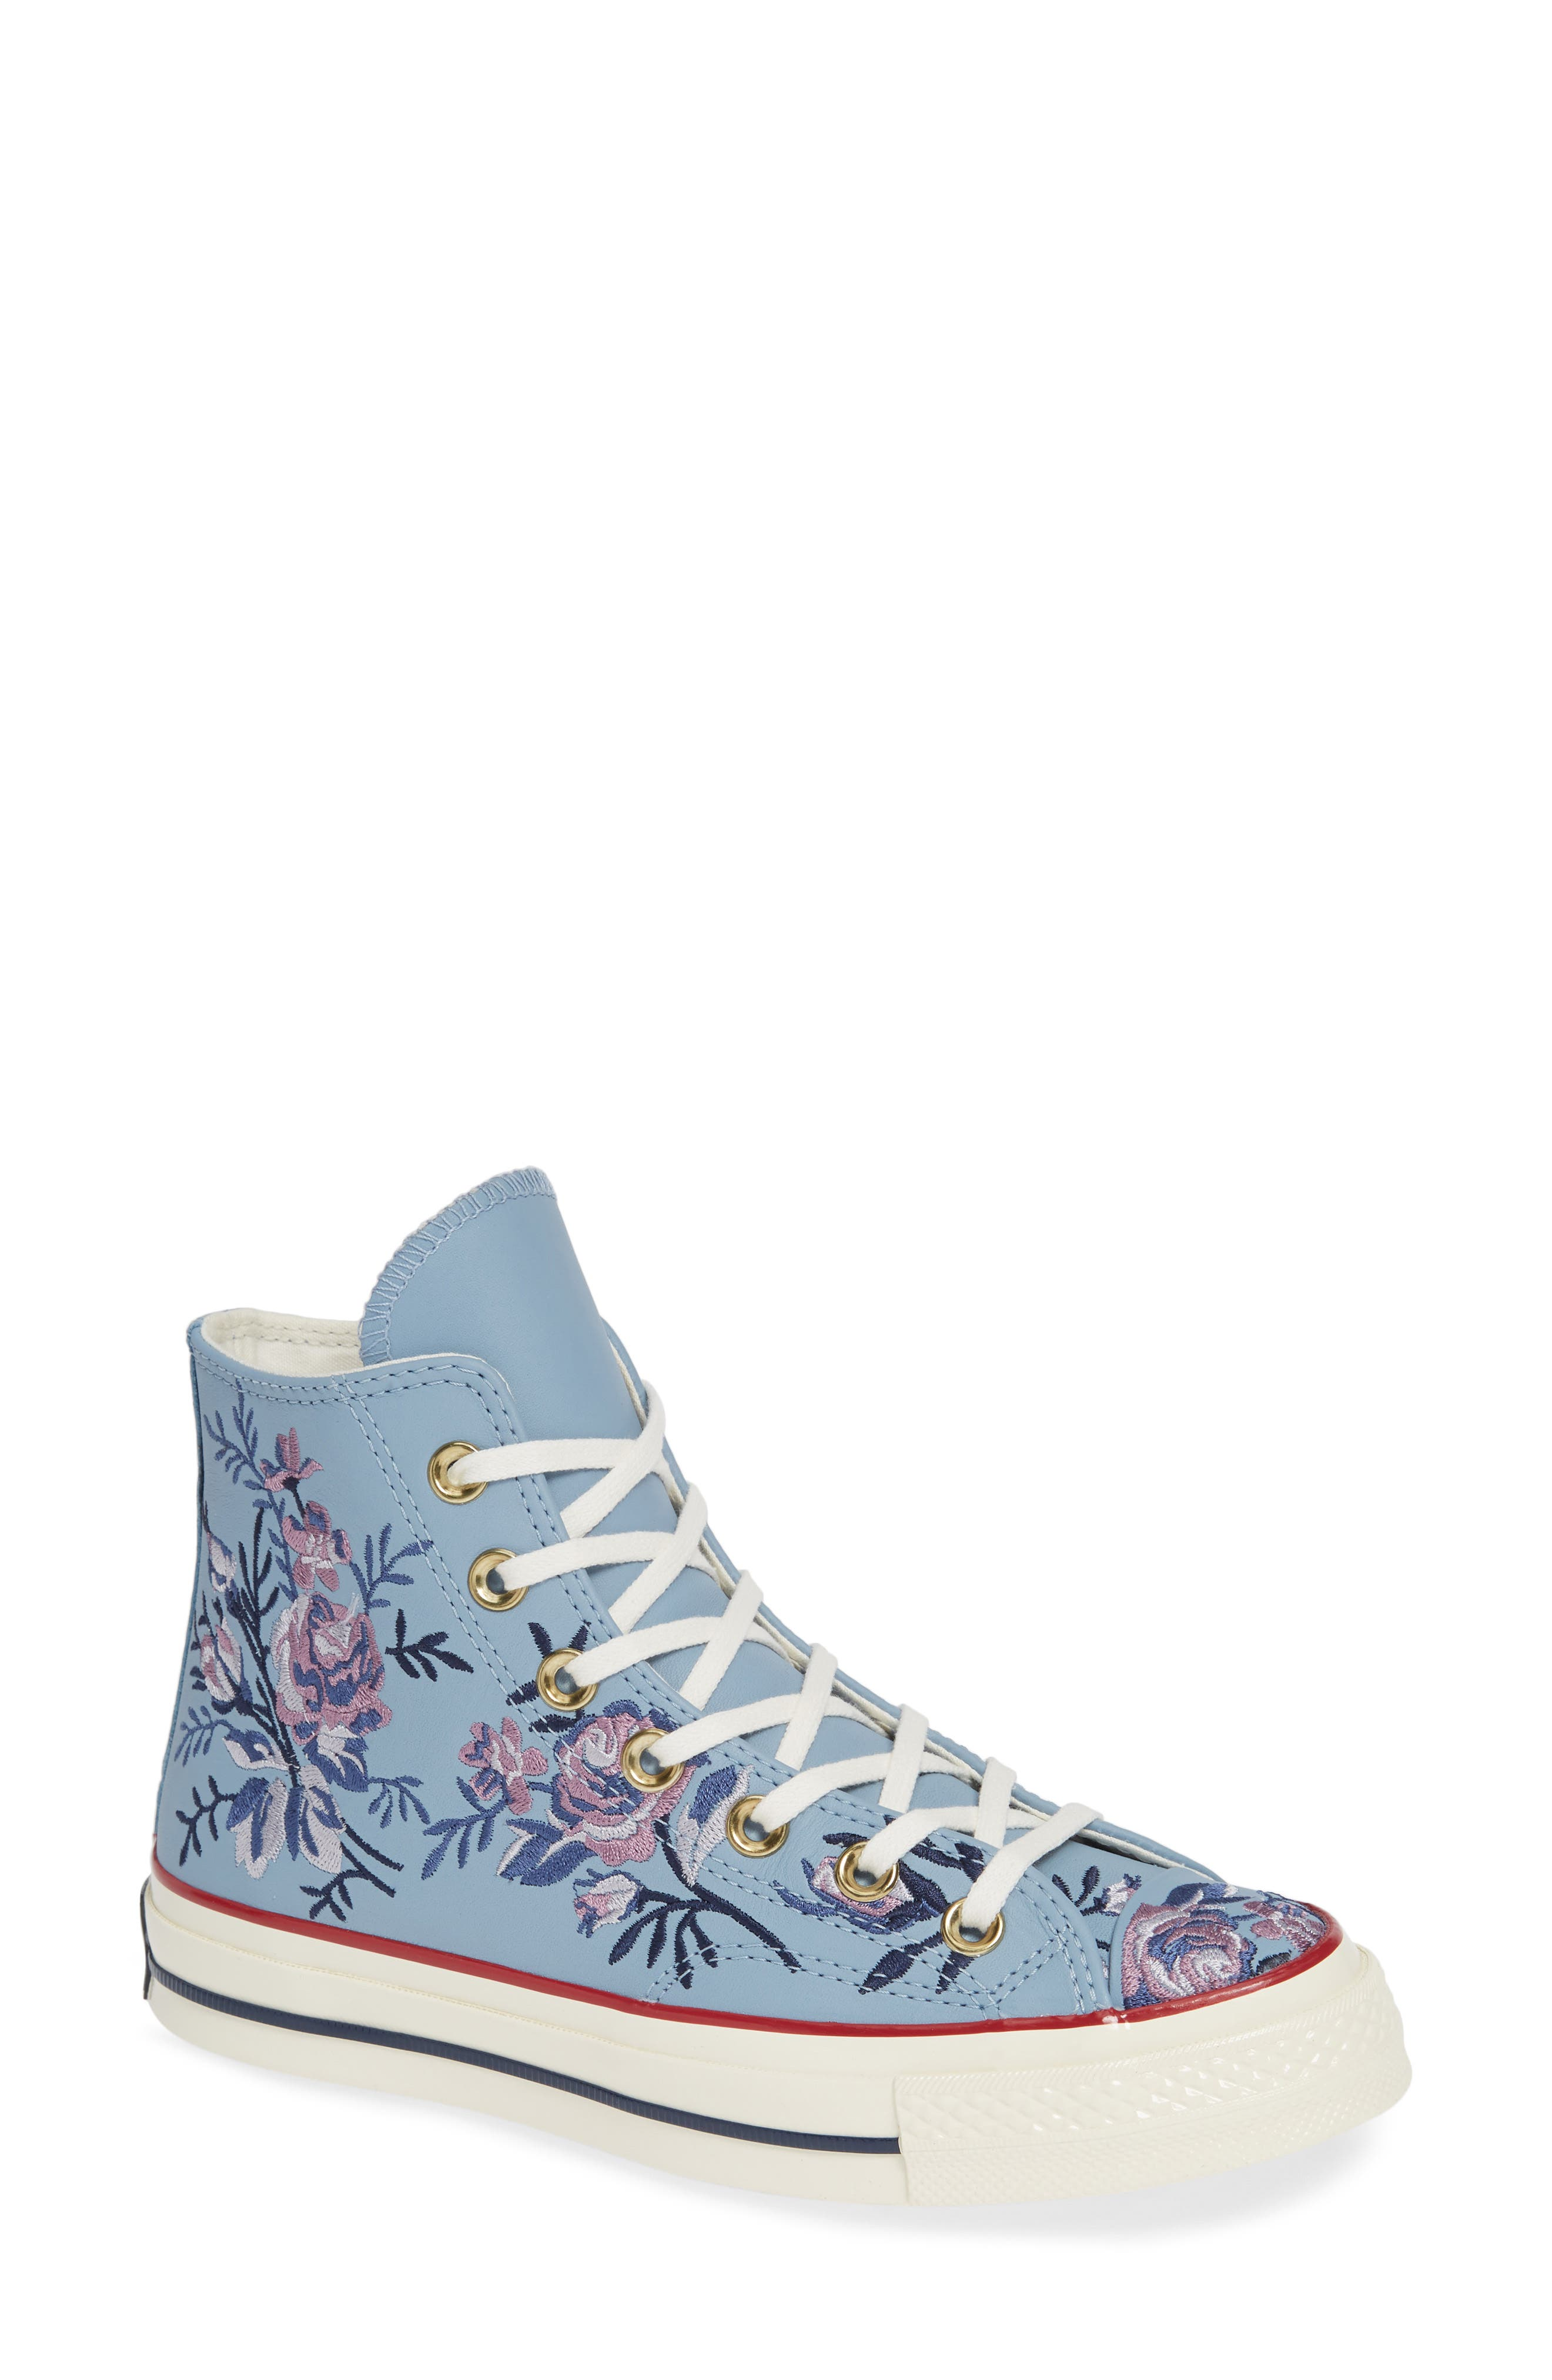 Chuck Taylor<sup>®</sup> All Star<sup>®</sup> Parkway Floral 70 High Top Sneaker,                         Main,                         color, WASHED DENIM LEATHER